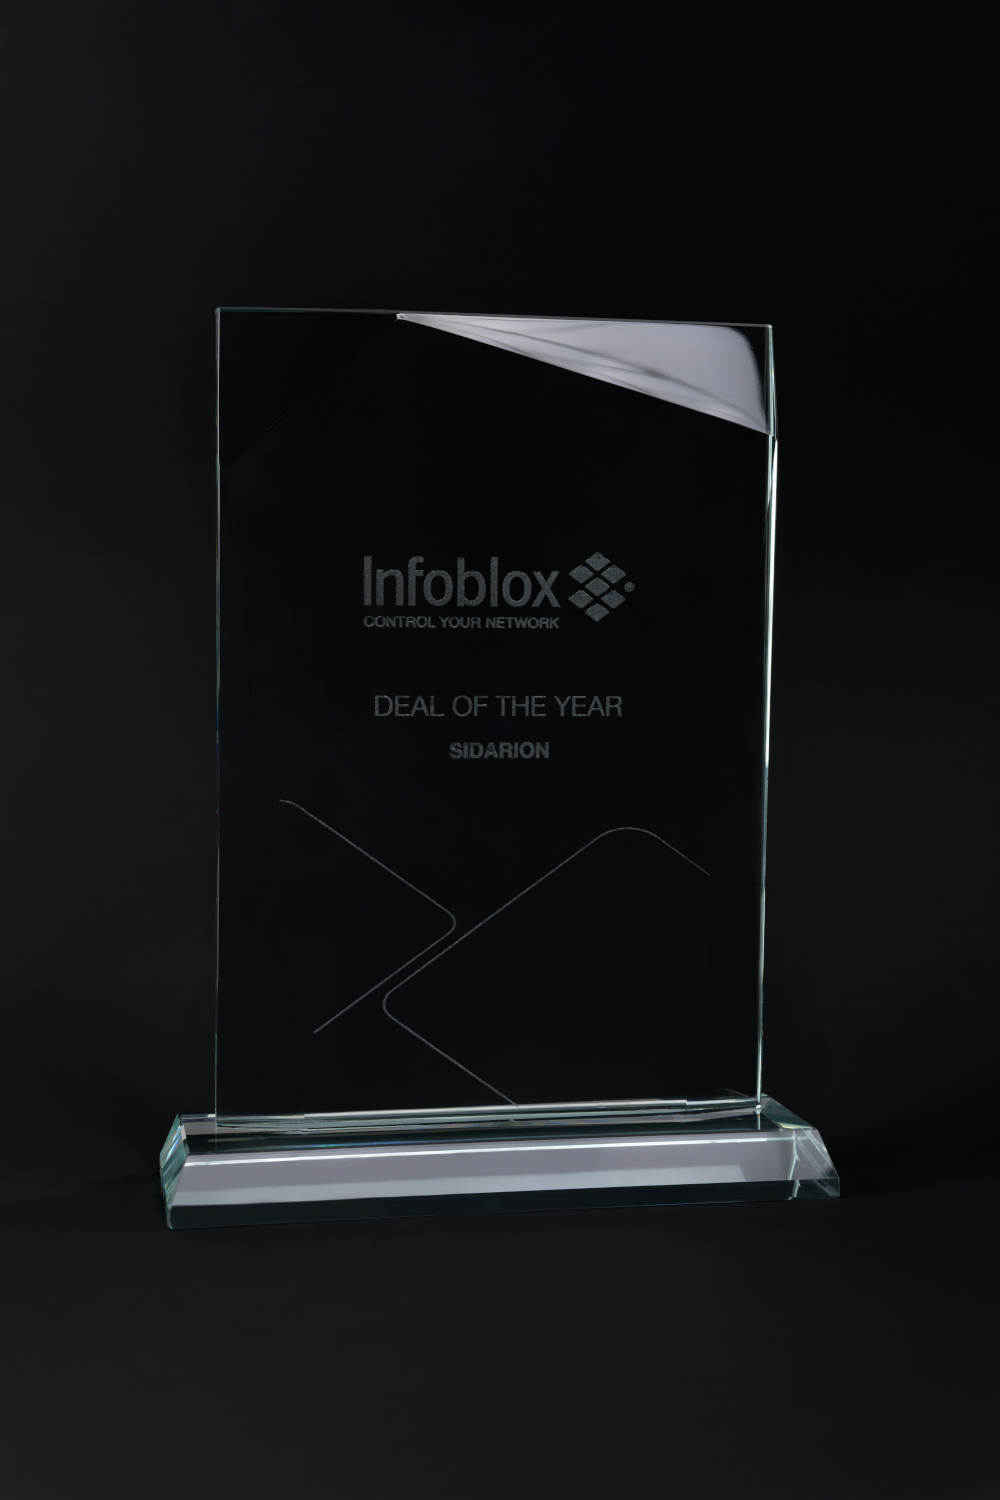 Infoblox Deal of the year 2018